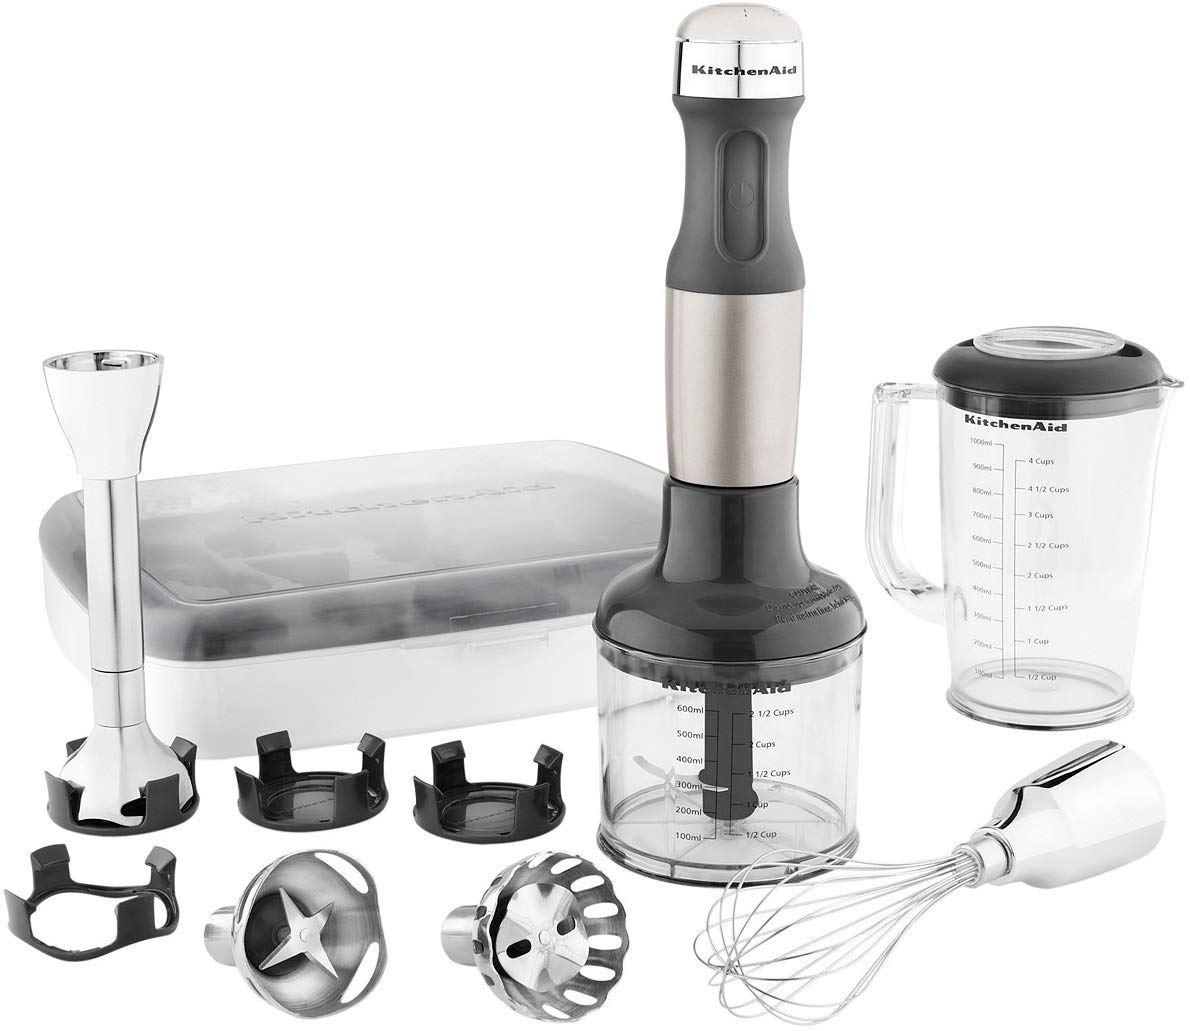 KitchenAid KHB2561ACS Architect Series 5-Speed Hand Blender - Coco Silver